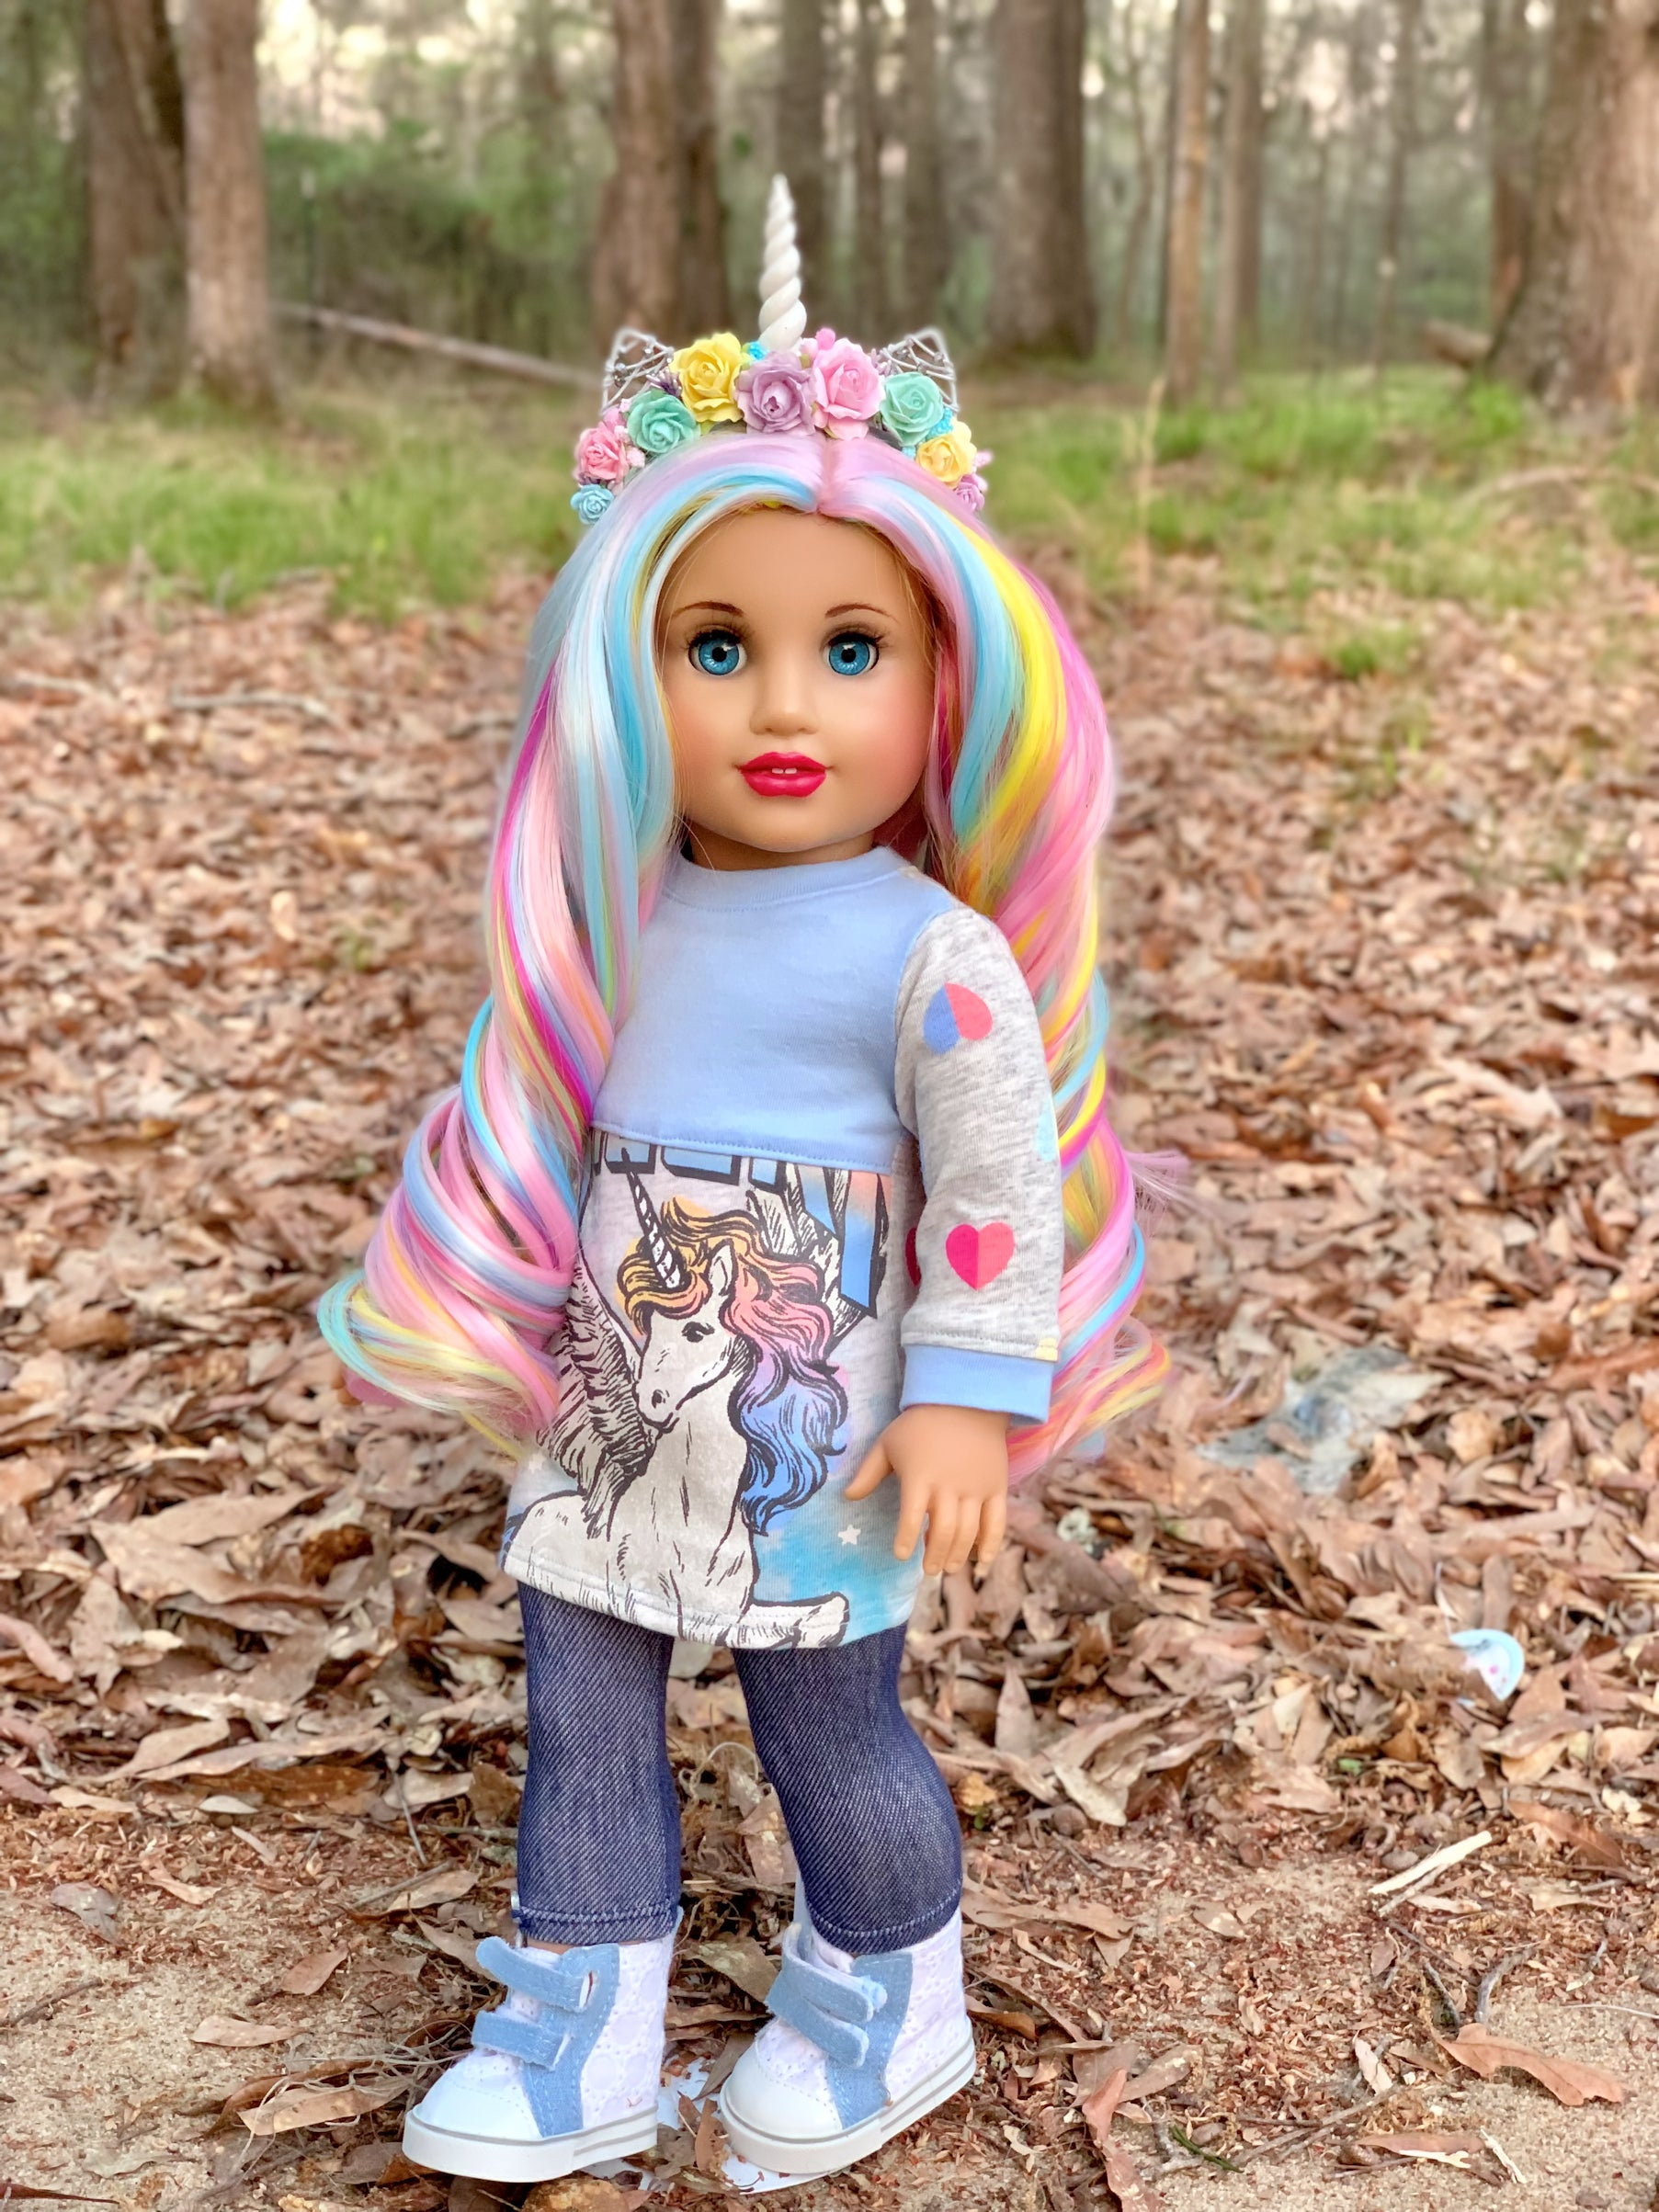 Zazou Dolls Exclusive Majesty WIG Sweetopia for 18 Inch dolls such as Journey & American Girl